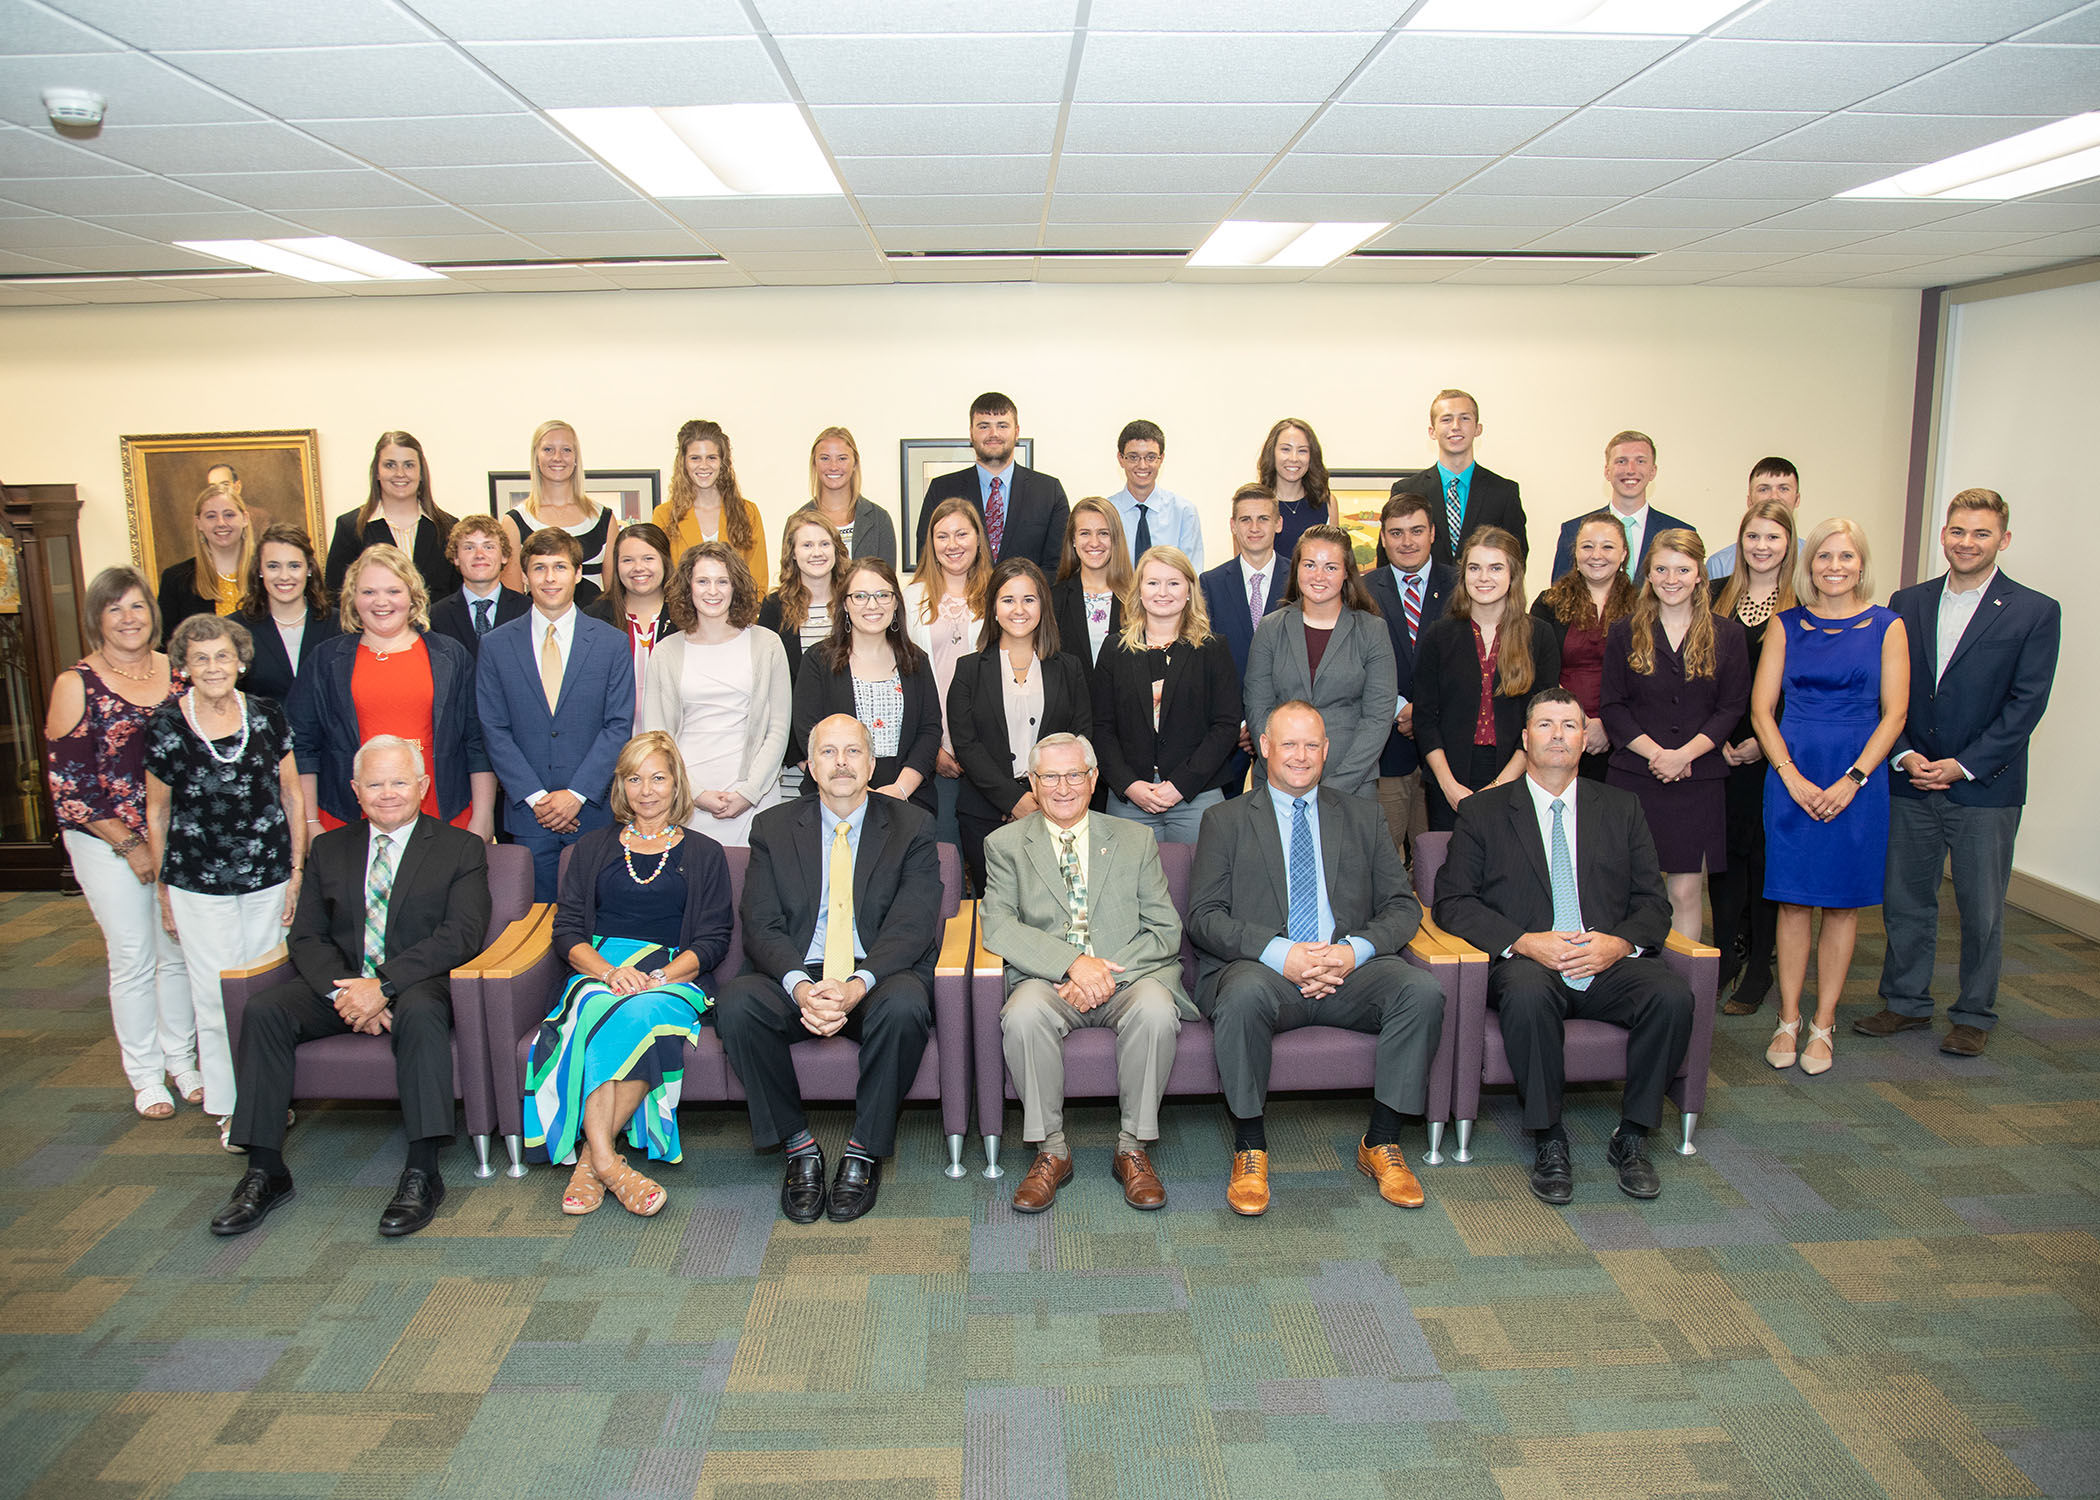 IAA scholarship recipients receive recognition